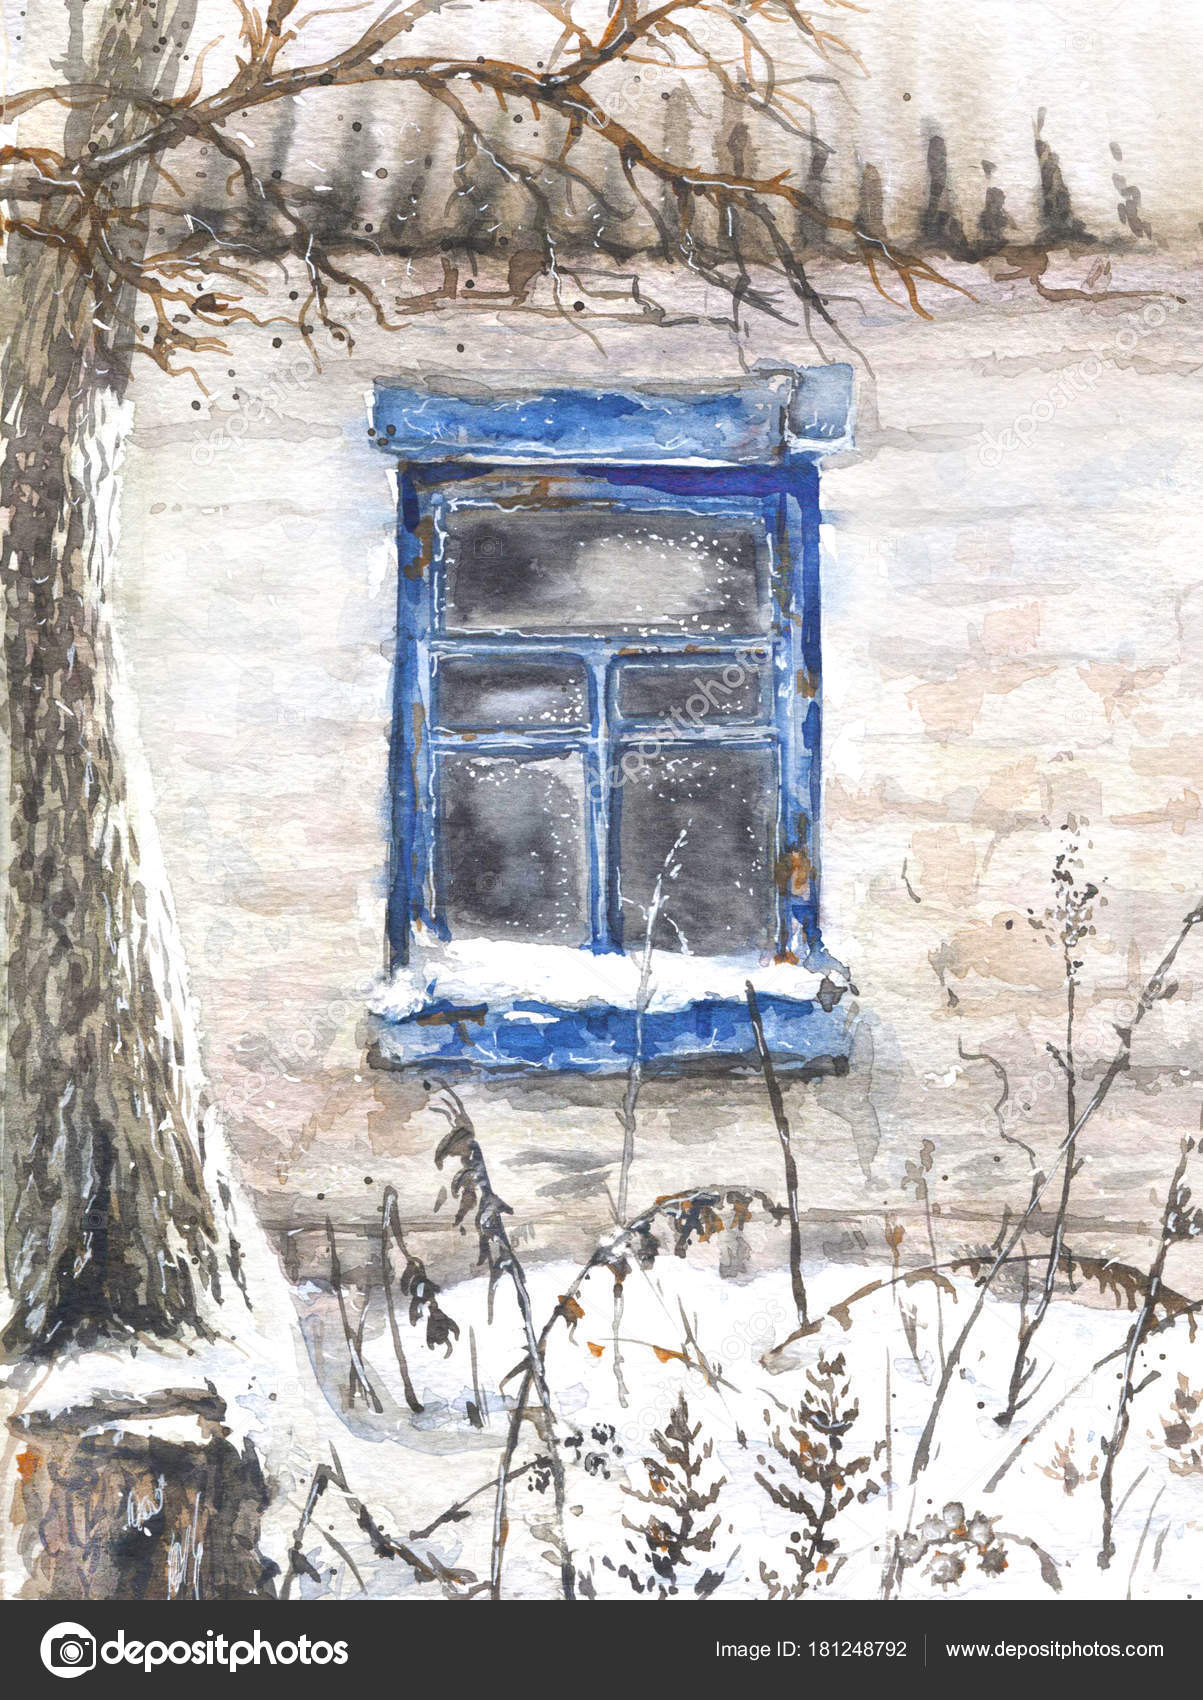 Hand Drawn Wall With Window Of An Old Abandoned House Winter Village Scene Photo By Valiva